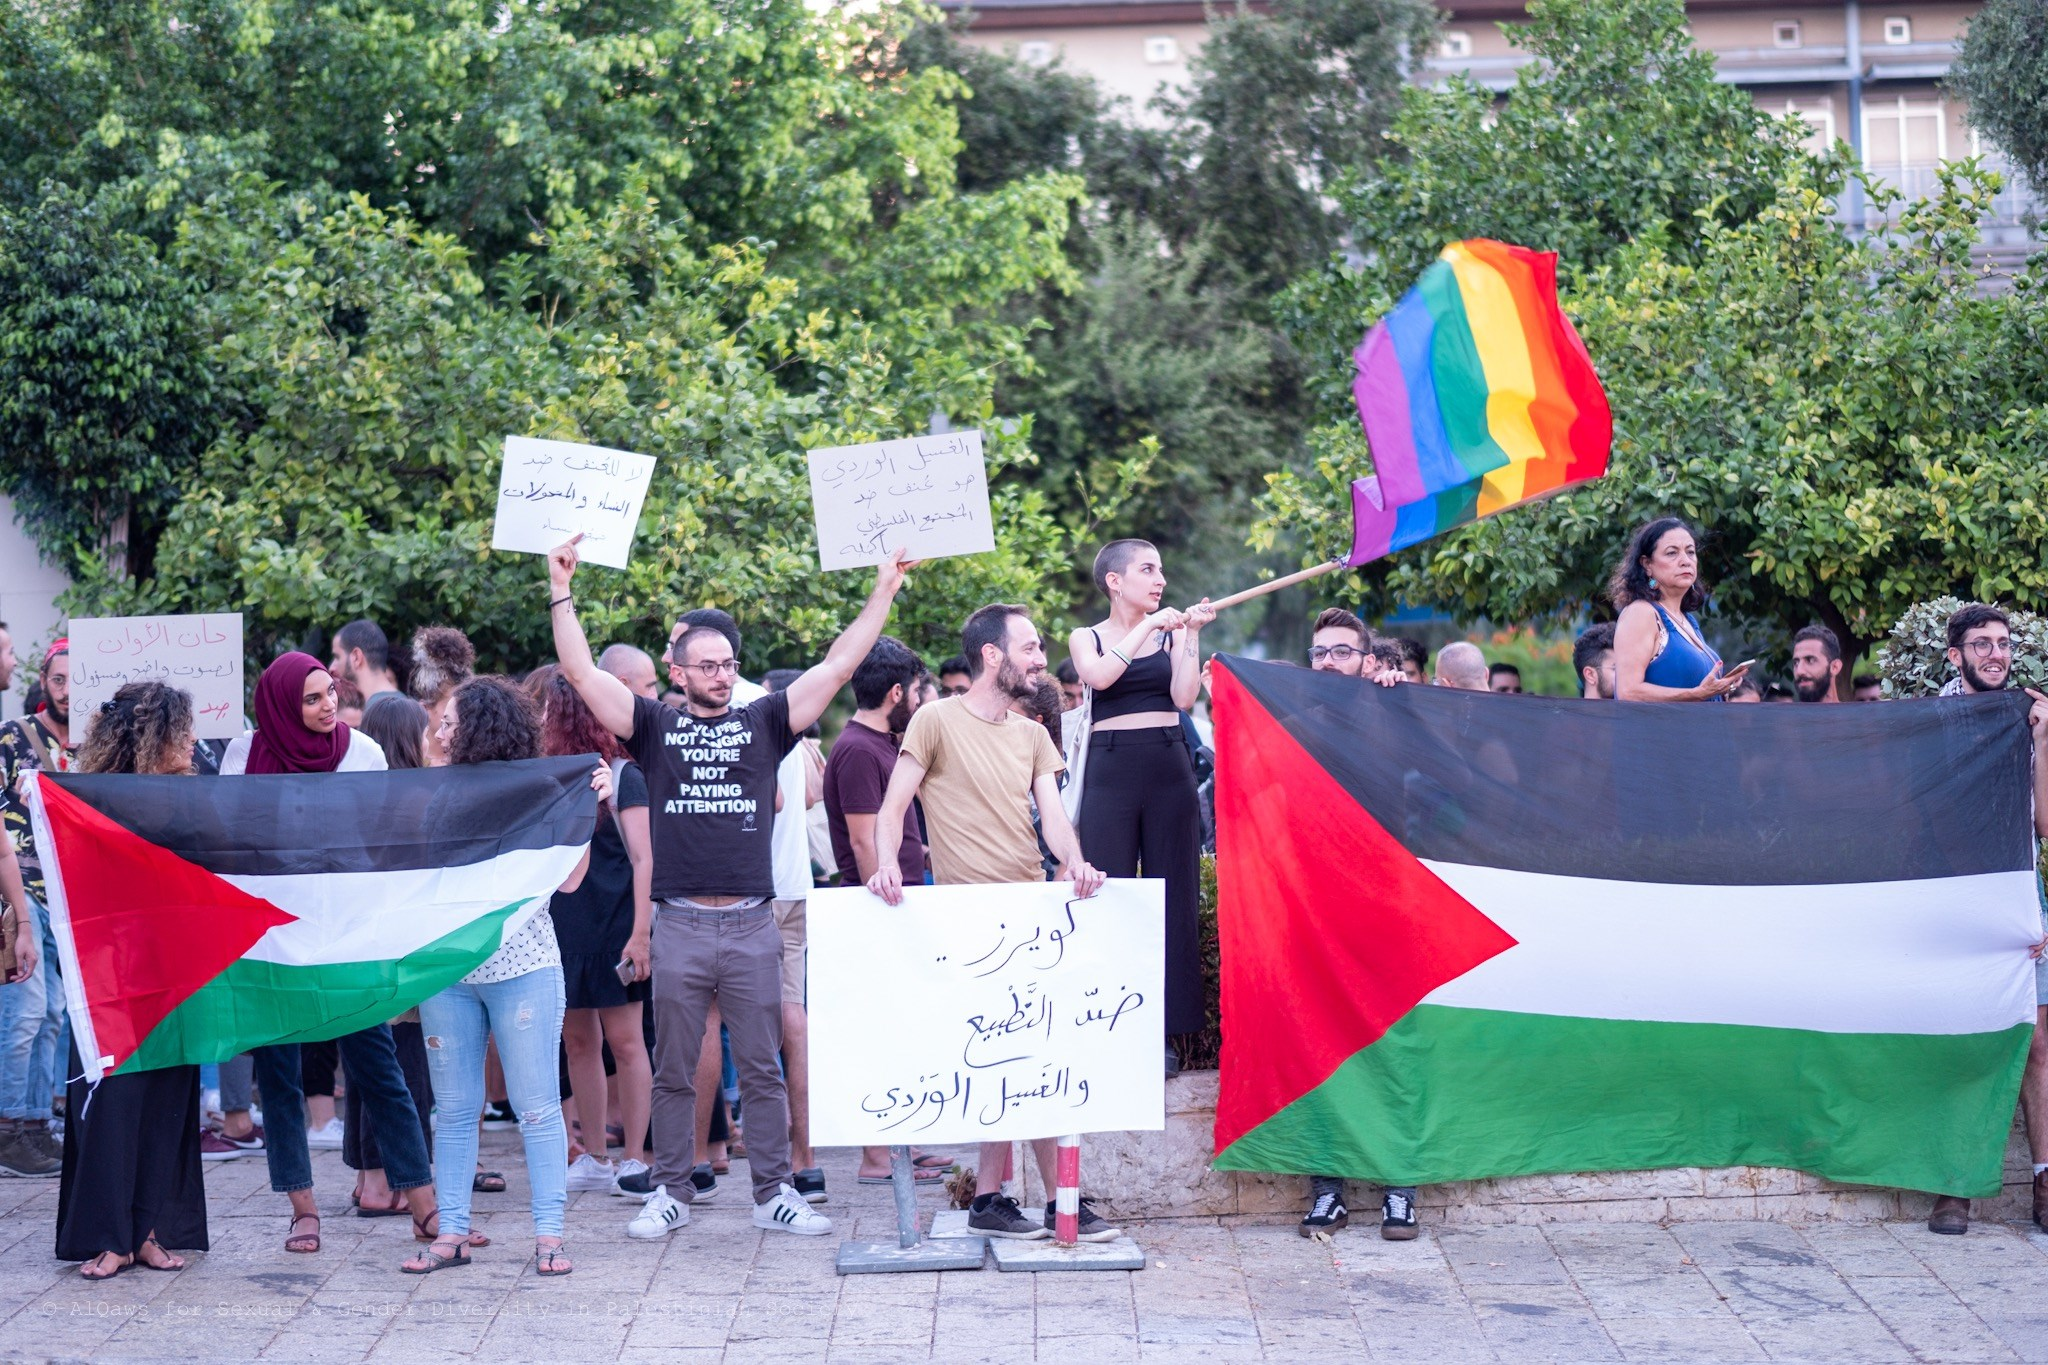 alQaws and Aswat at a protest in Haifa, 2019